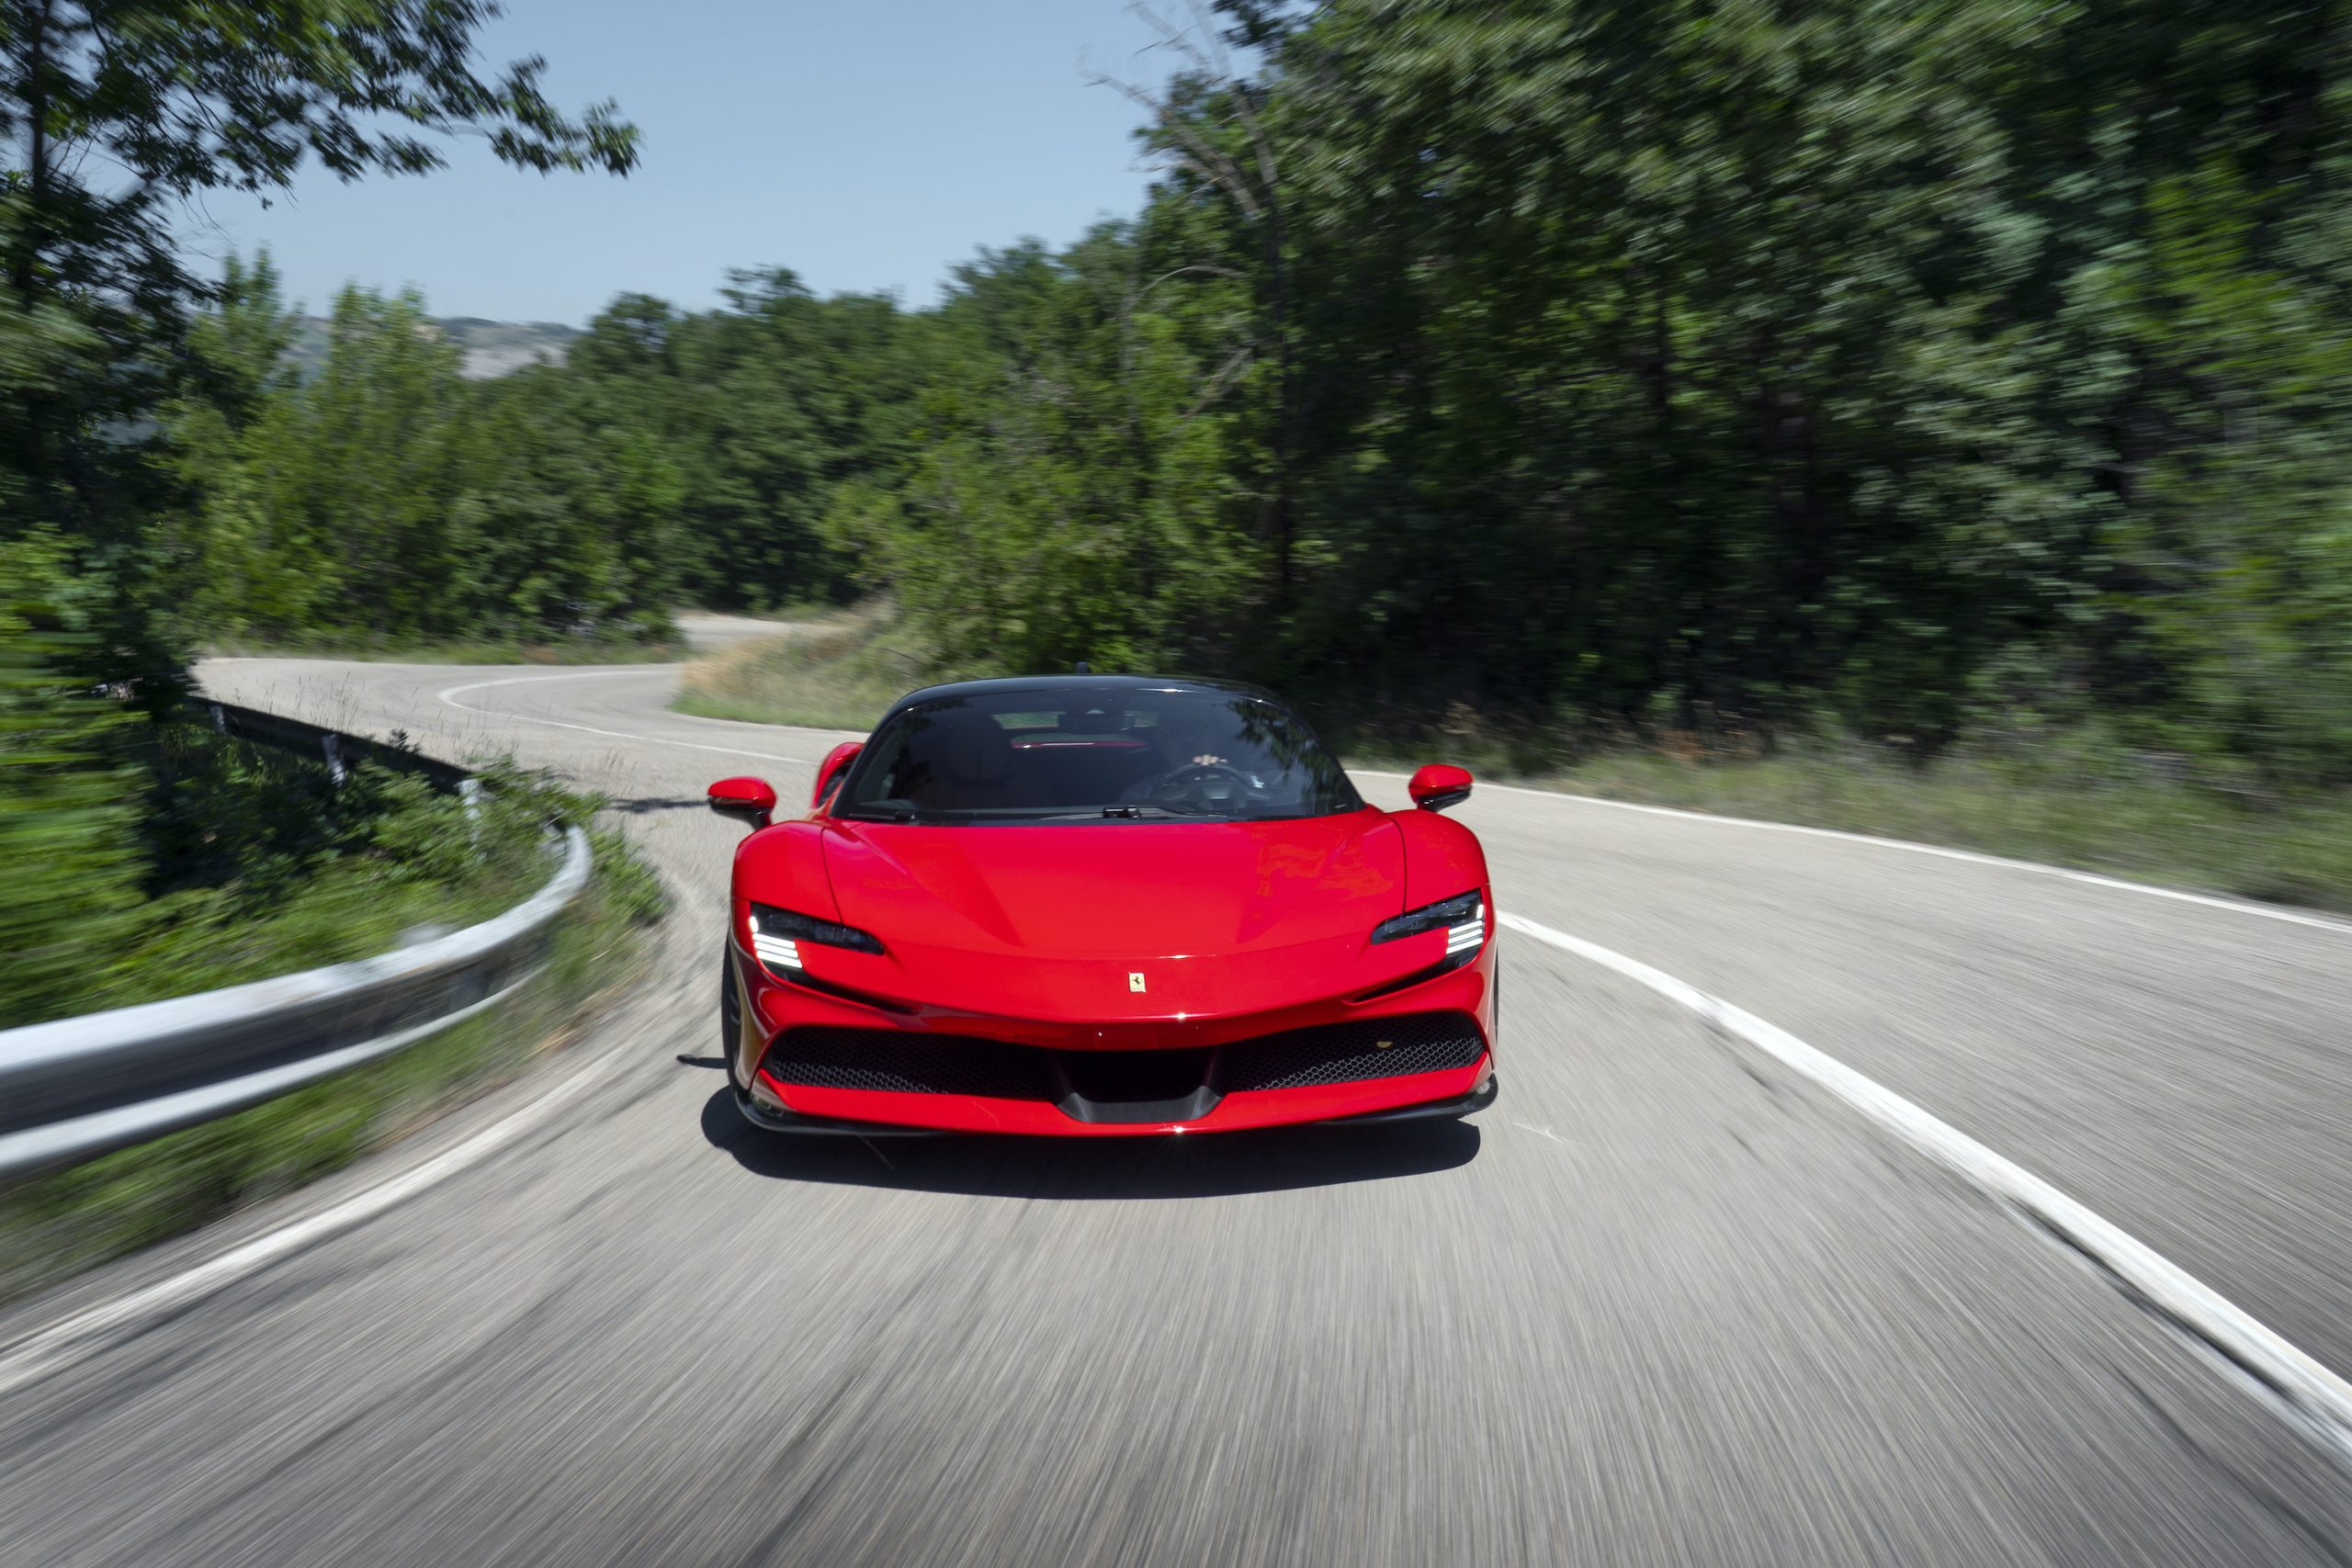 SF90 Stradale front road action